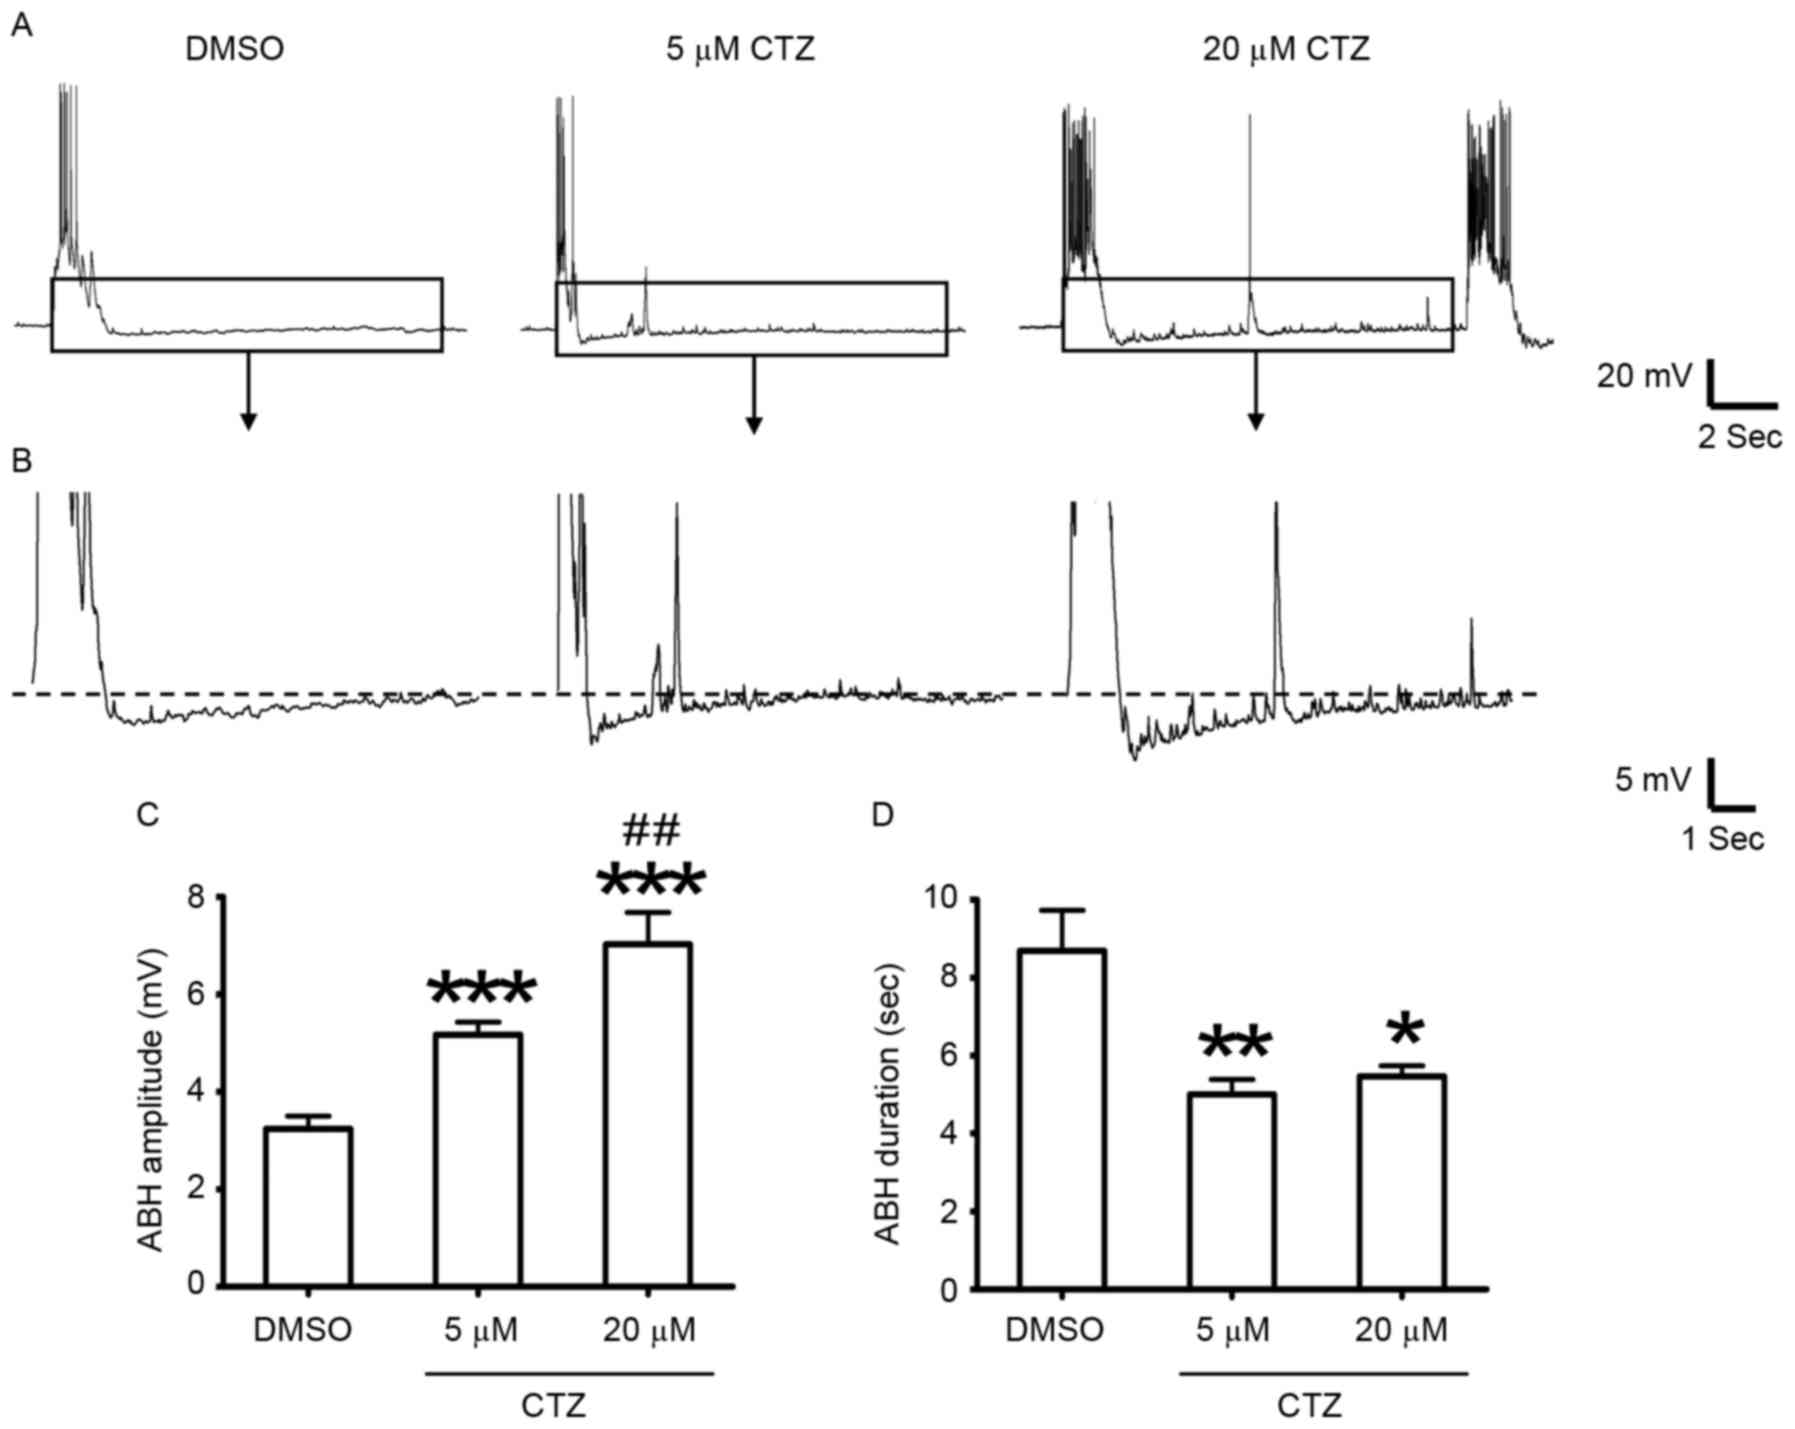 Sk Channels Participate In The Formation Of After Burst Heater Wiring Diagram Holmes Get Free Image About Figure 1 Abh Amplitude Increased However Duration Decreased Following Induction Seizures With Ctz Representative Recording Traces